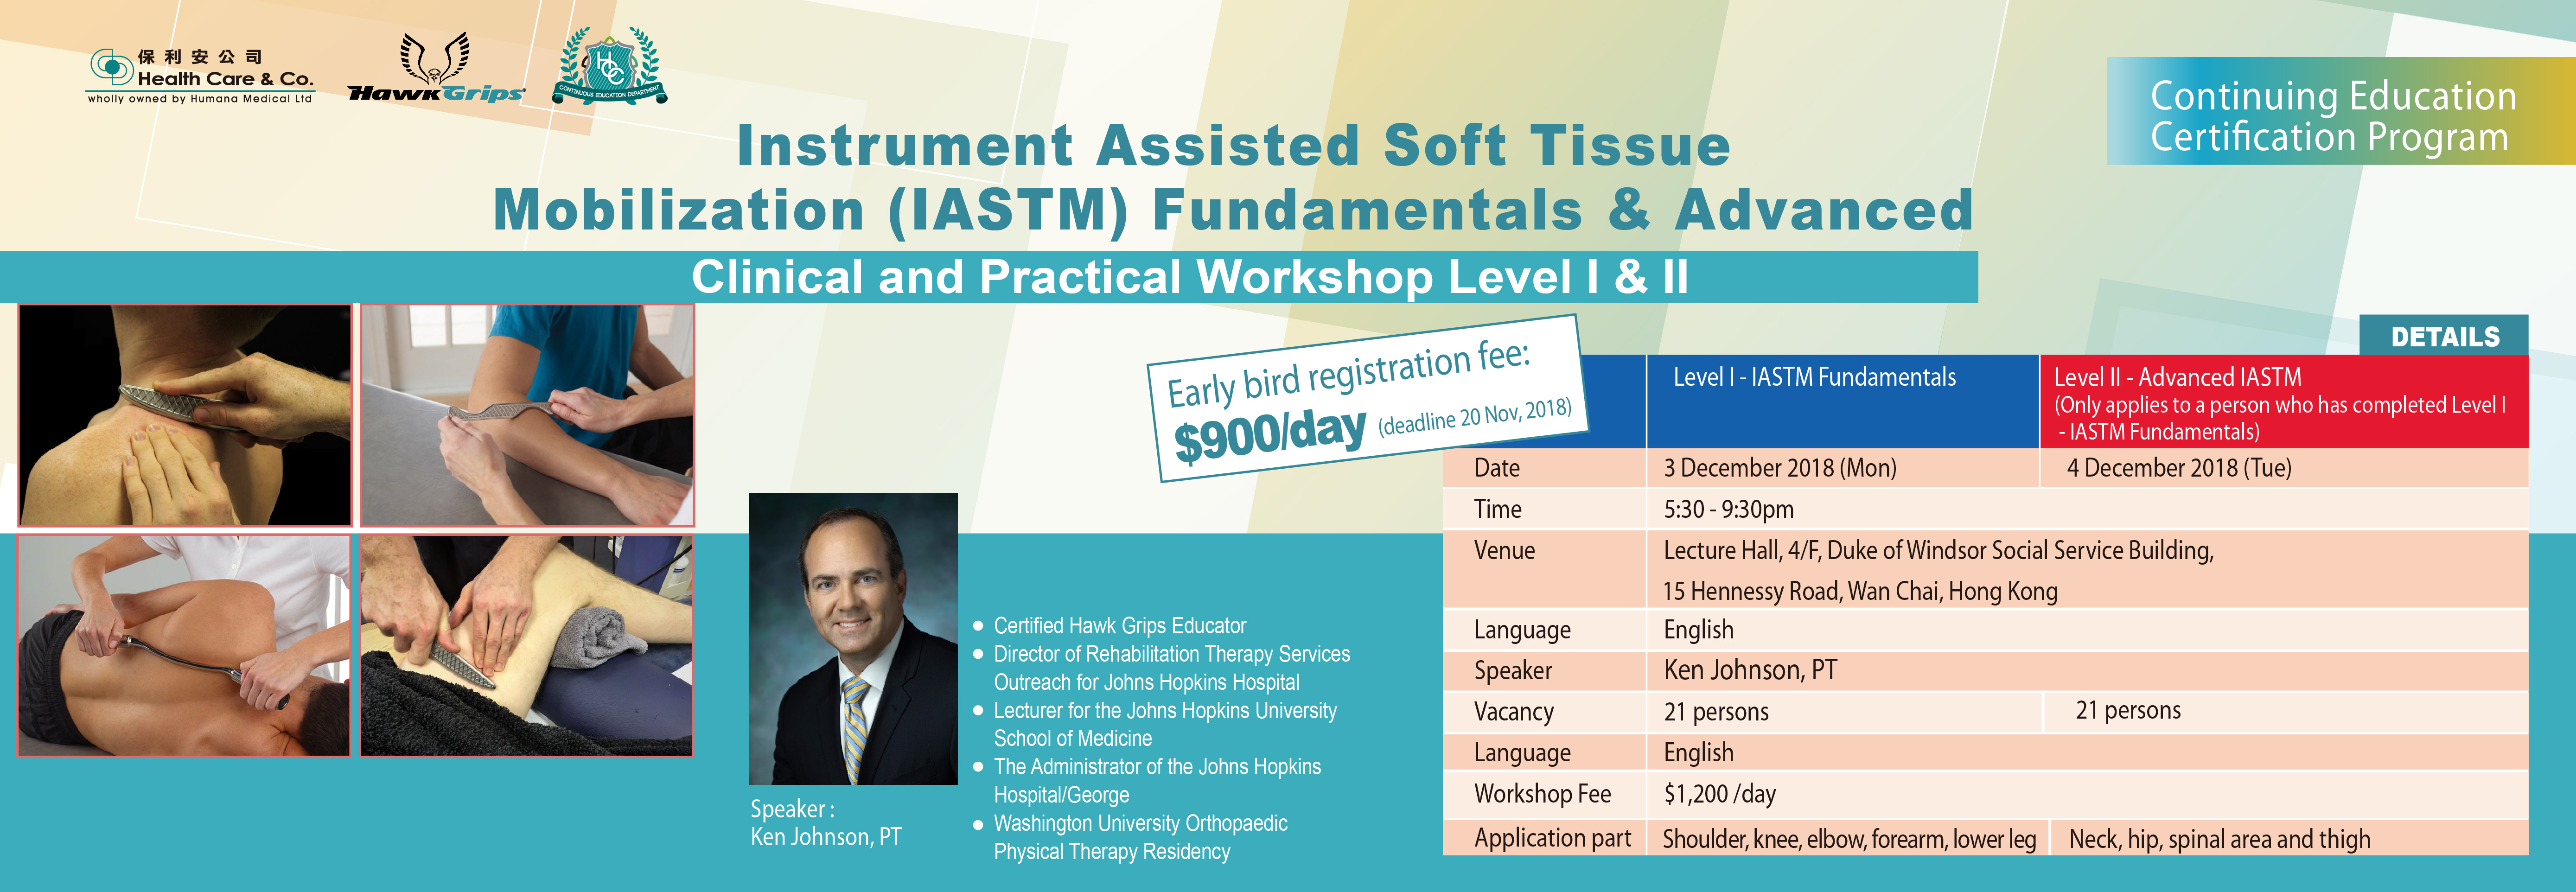 Instrument Assisted Soft Tissue Mobilization IASTM Fundamentals & Advanced - Clinical and Practical Workshop Level I & II